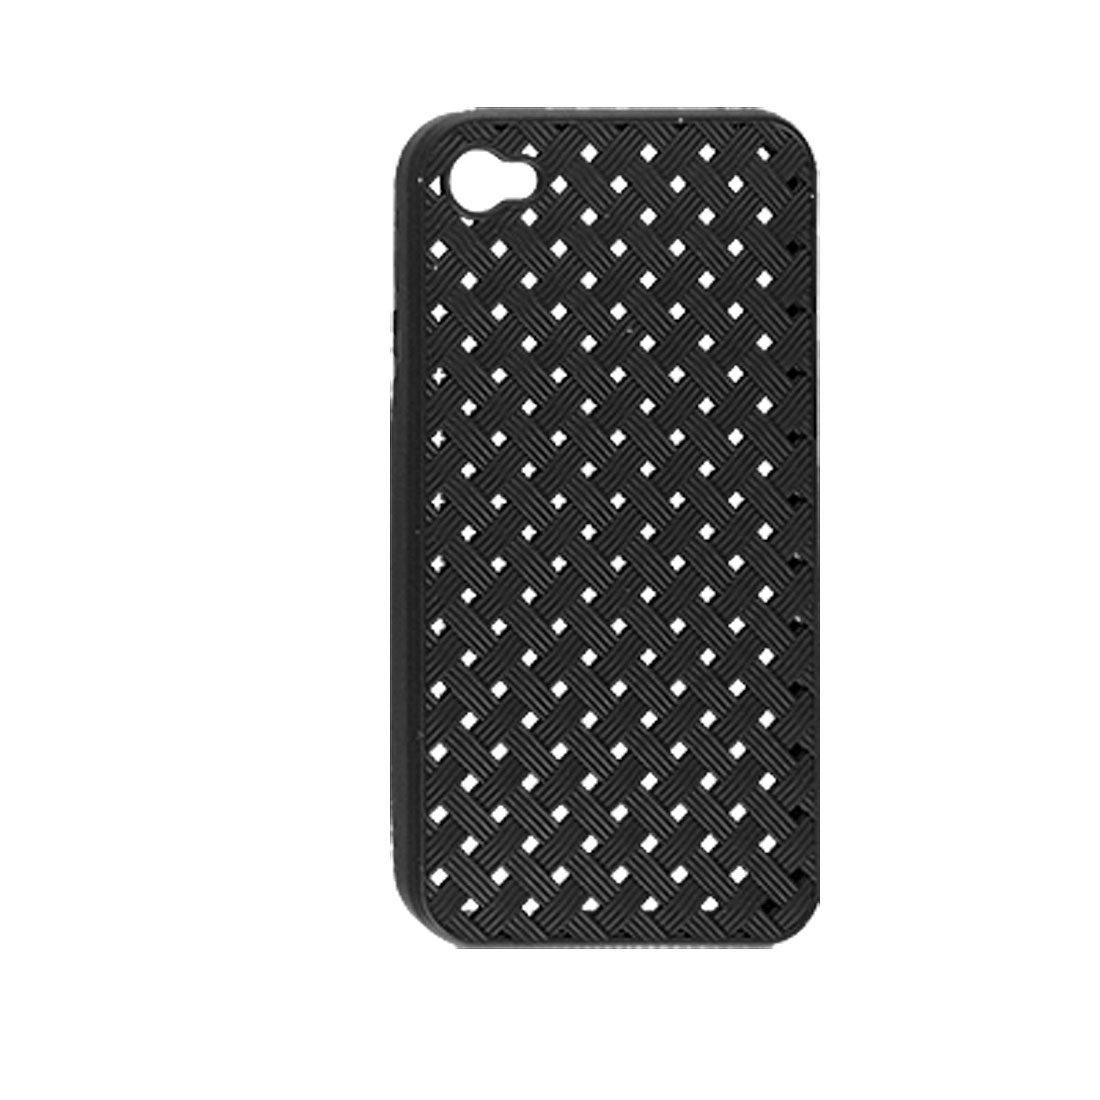 Weave Pattern Hollow Out Soft Plastic Black Case for iPhone 4 4G